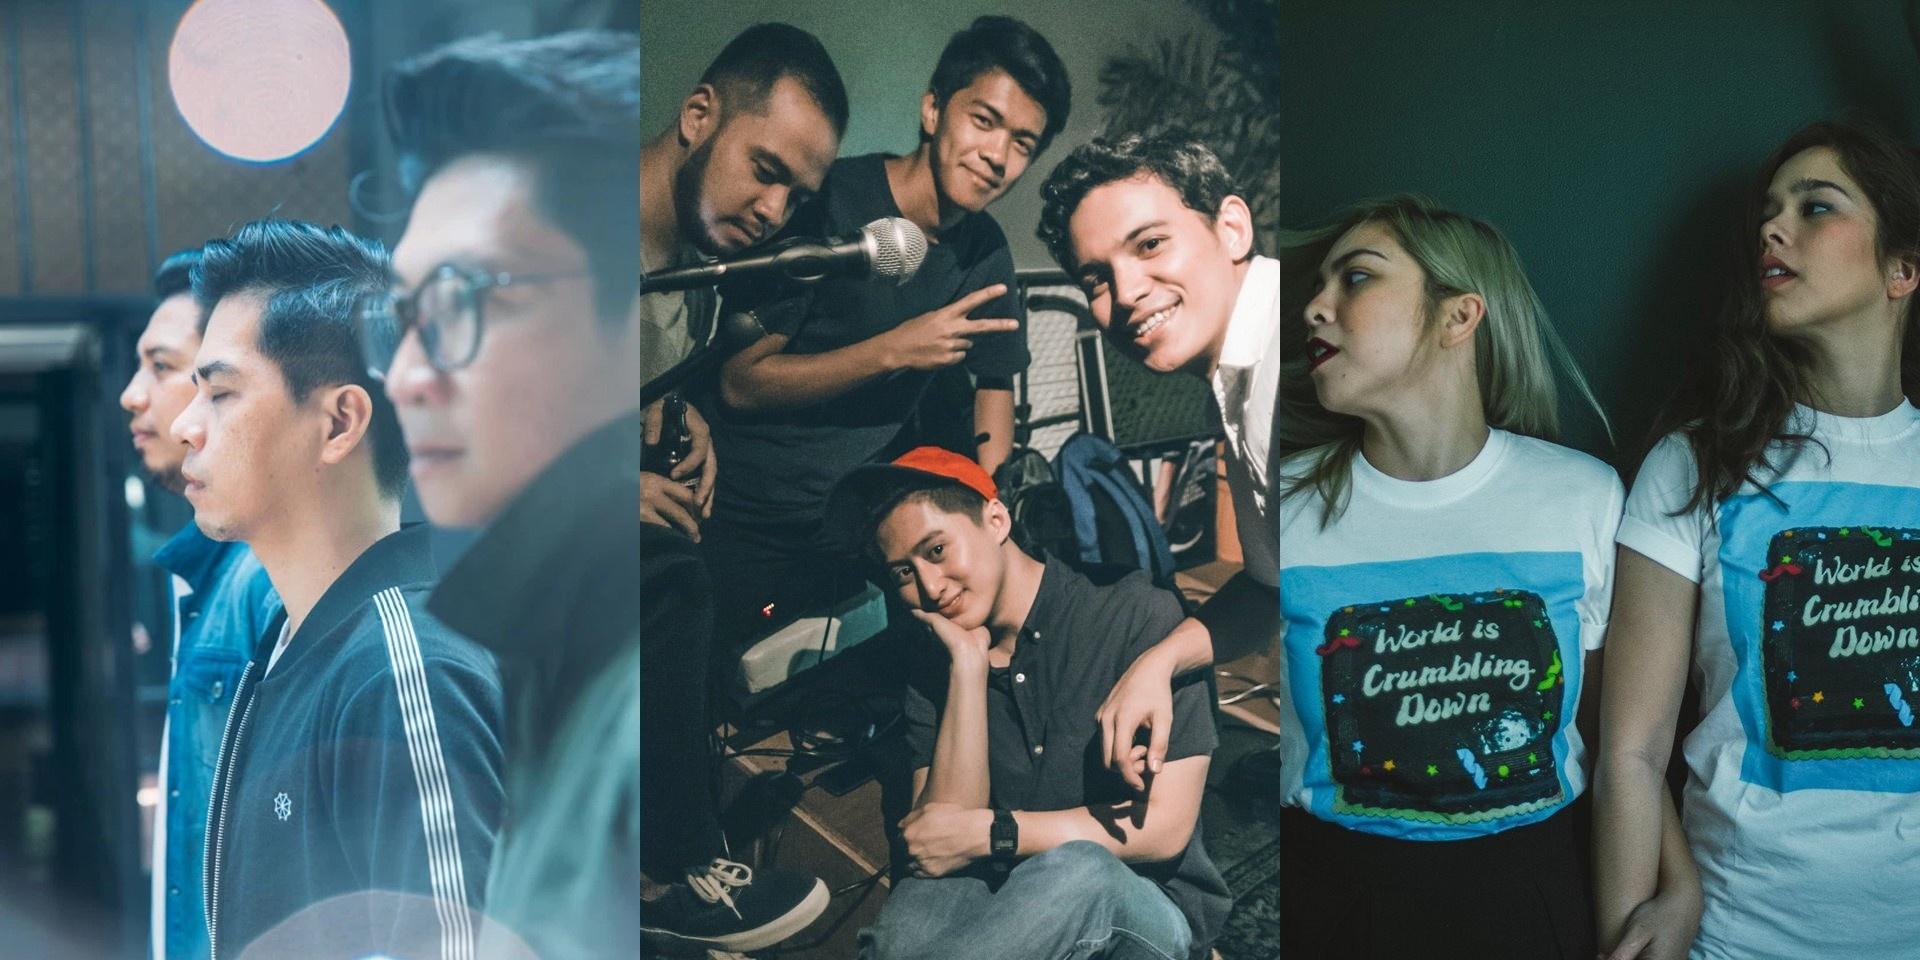 Orange & Lemons, Rusty Machines, Cheats and more to perform at Free the Sea Movement 3 in La Union